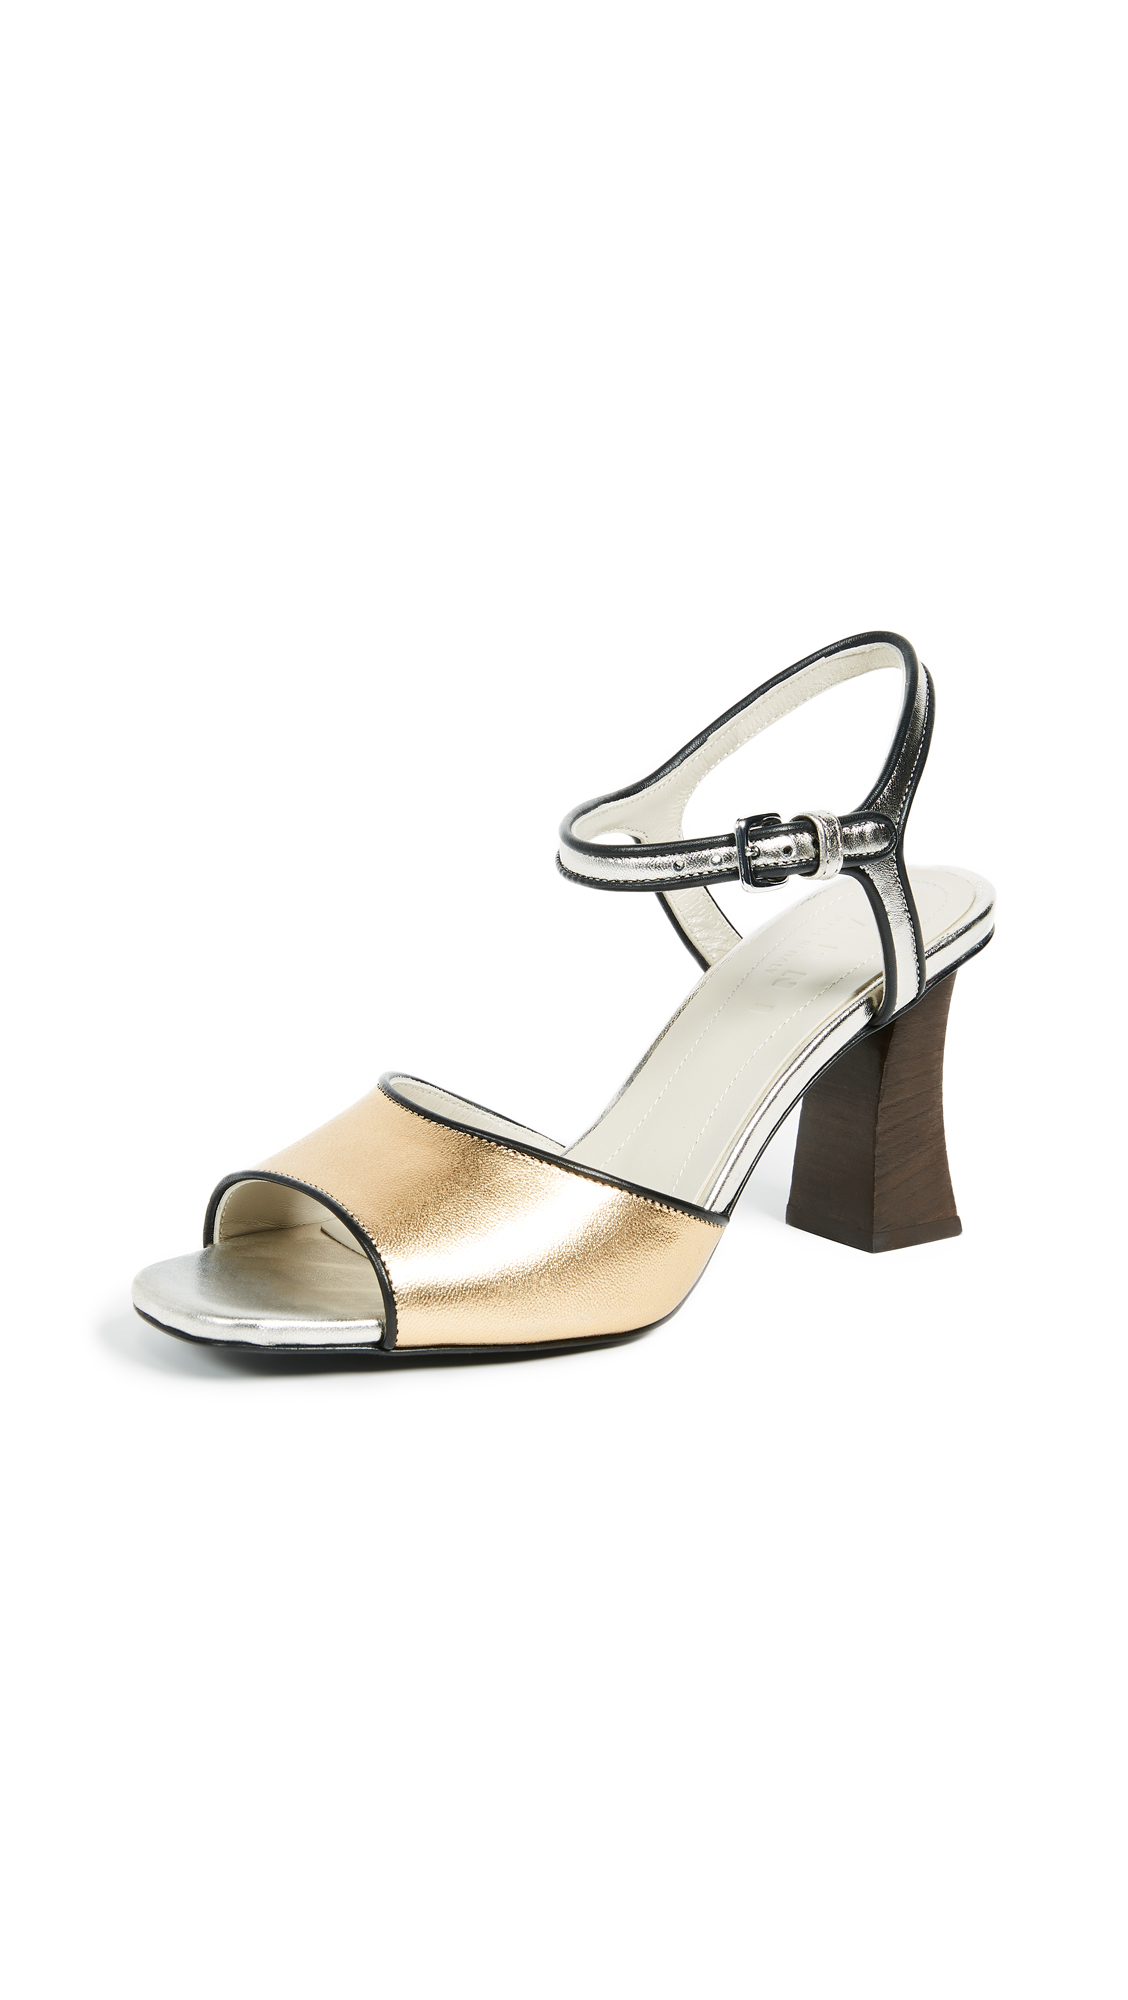 Marni Strappy Sandal Pumps - Light Gold Sand/Silver